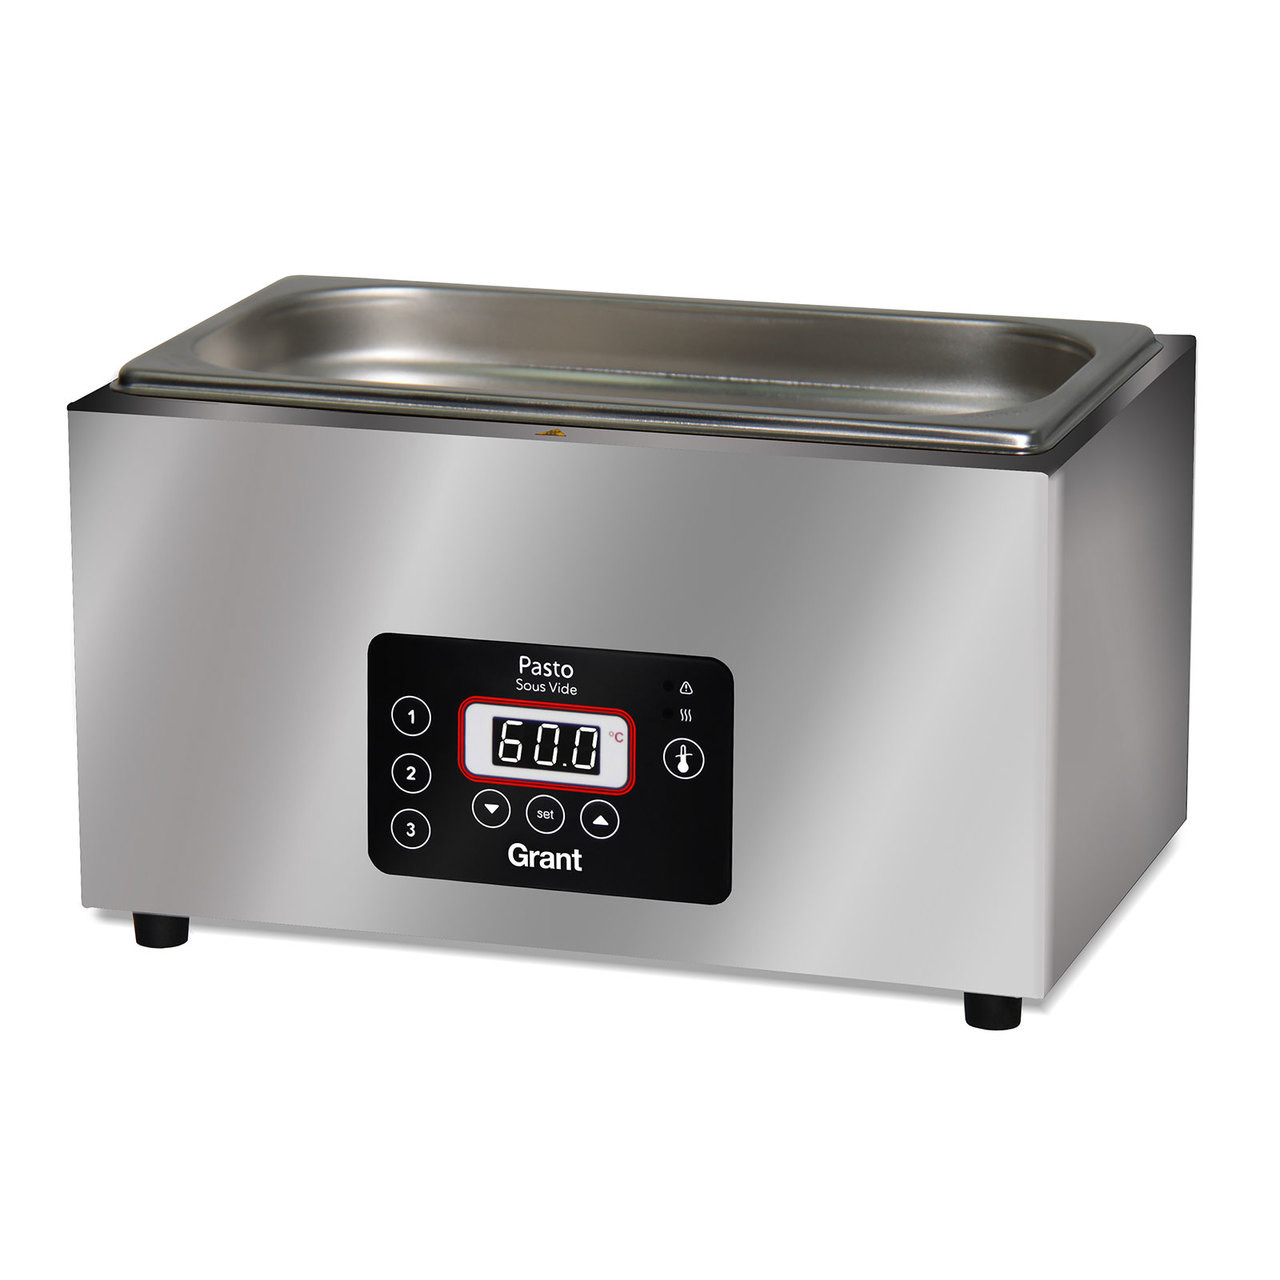 Grant - Pasto Sous Vide Water Bath 5lt - Stainless Steel